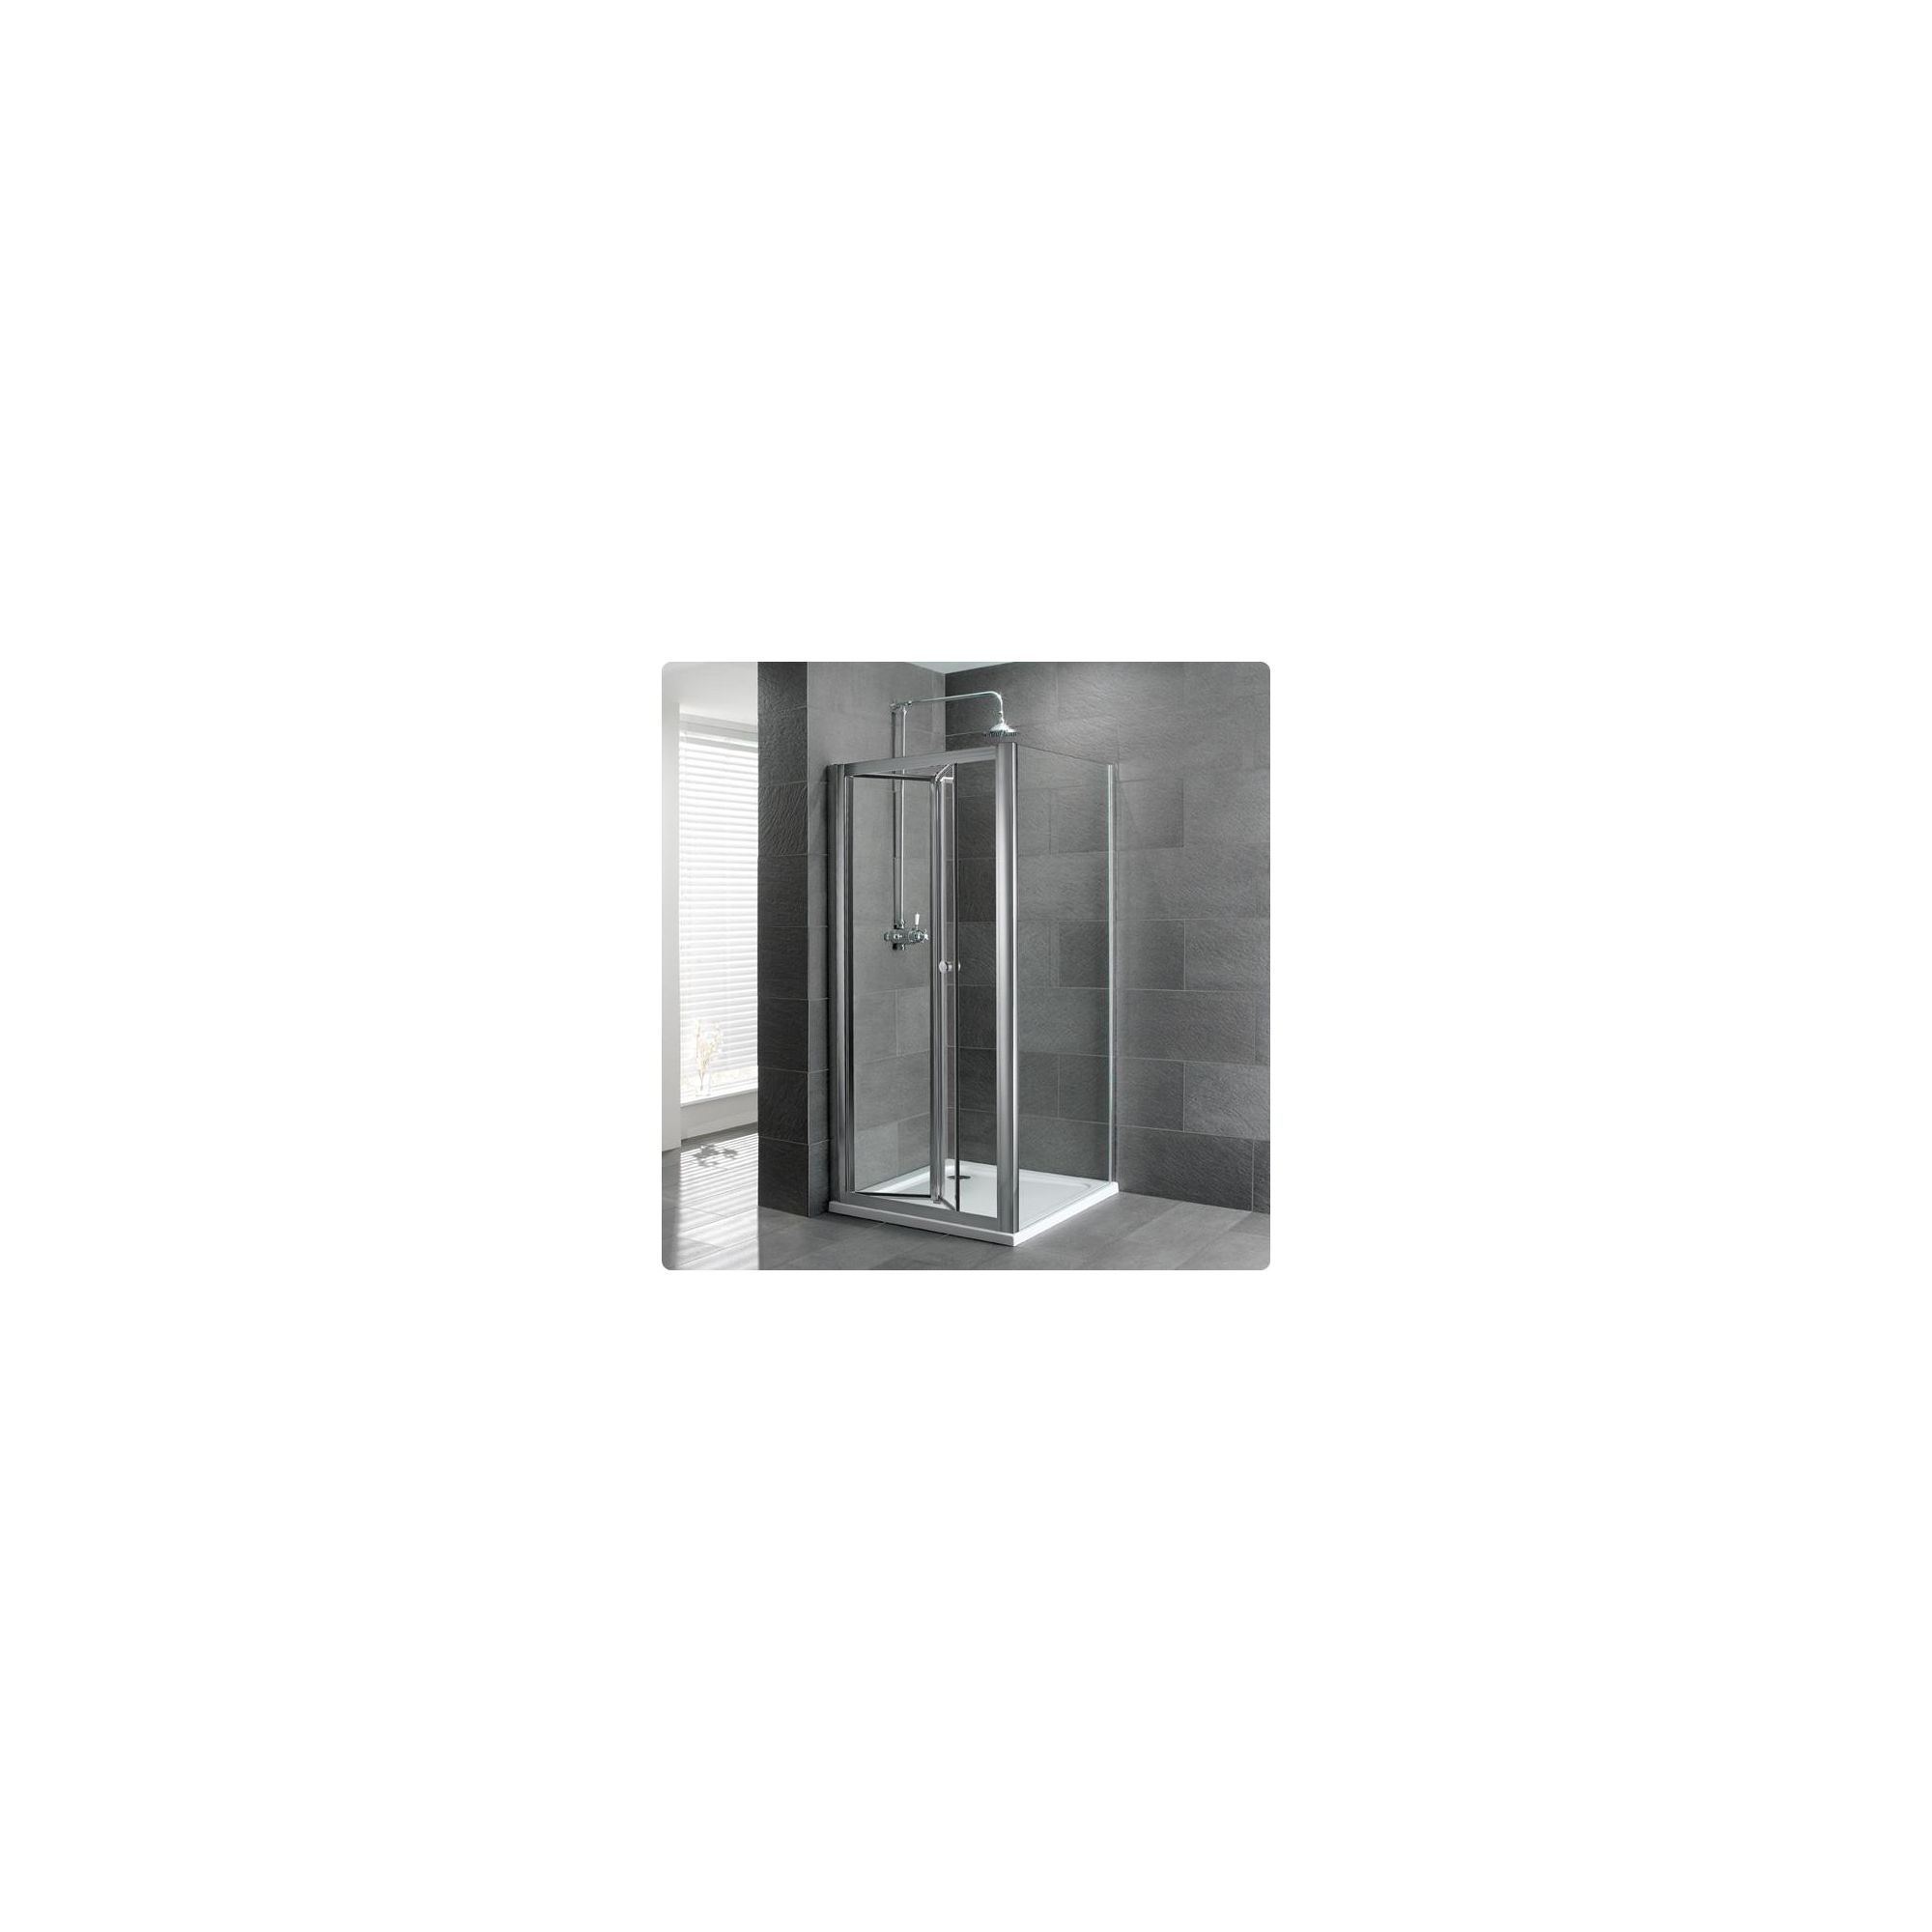 Duchy Select Silver Bi-Fold Door Shower Enclosure, 760mm x 760mm, Standard Tray, 6mm Glass at Tesco Direct